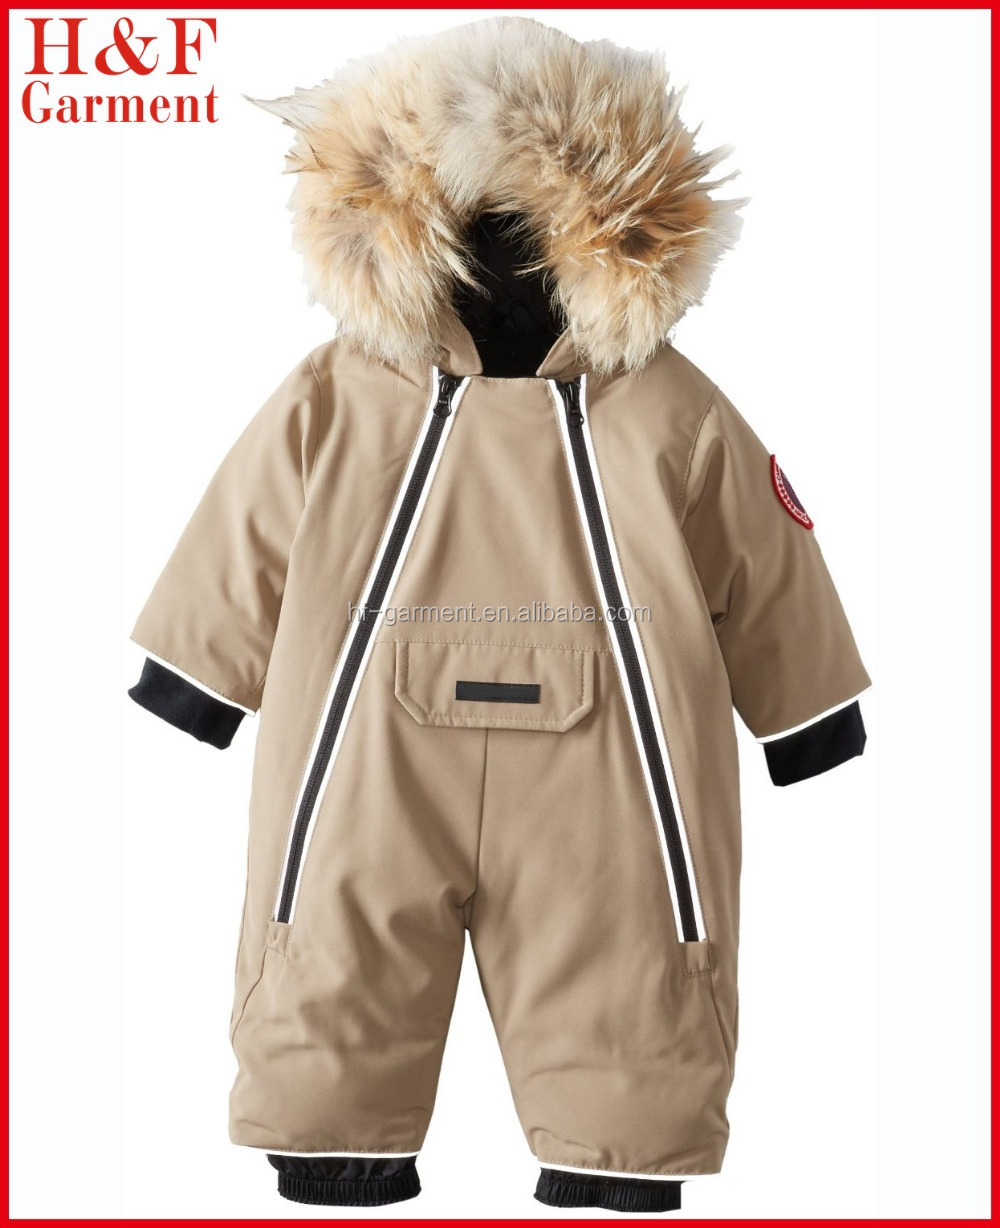 972e0d3861a8 Infant Toddler Snowsuit Coveralls Insulated Hooded Custom Logo - Buy ...